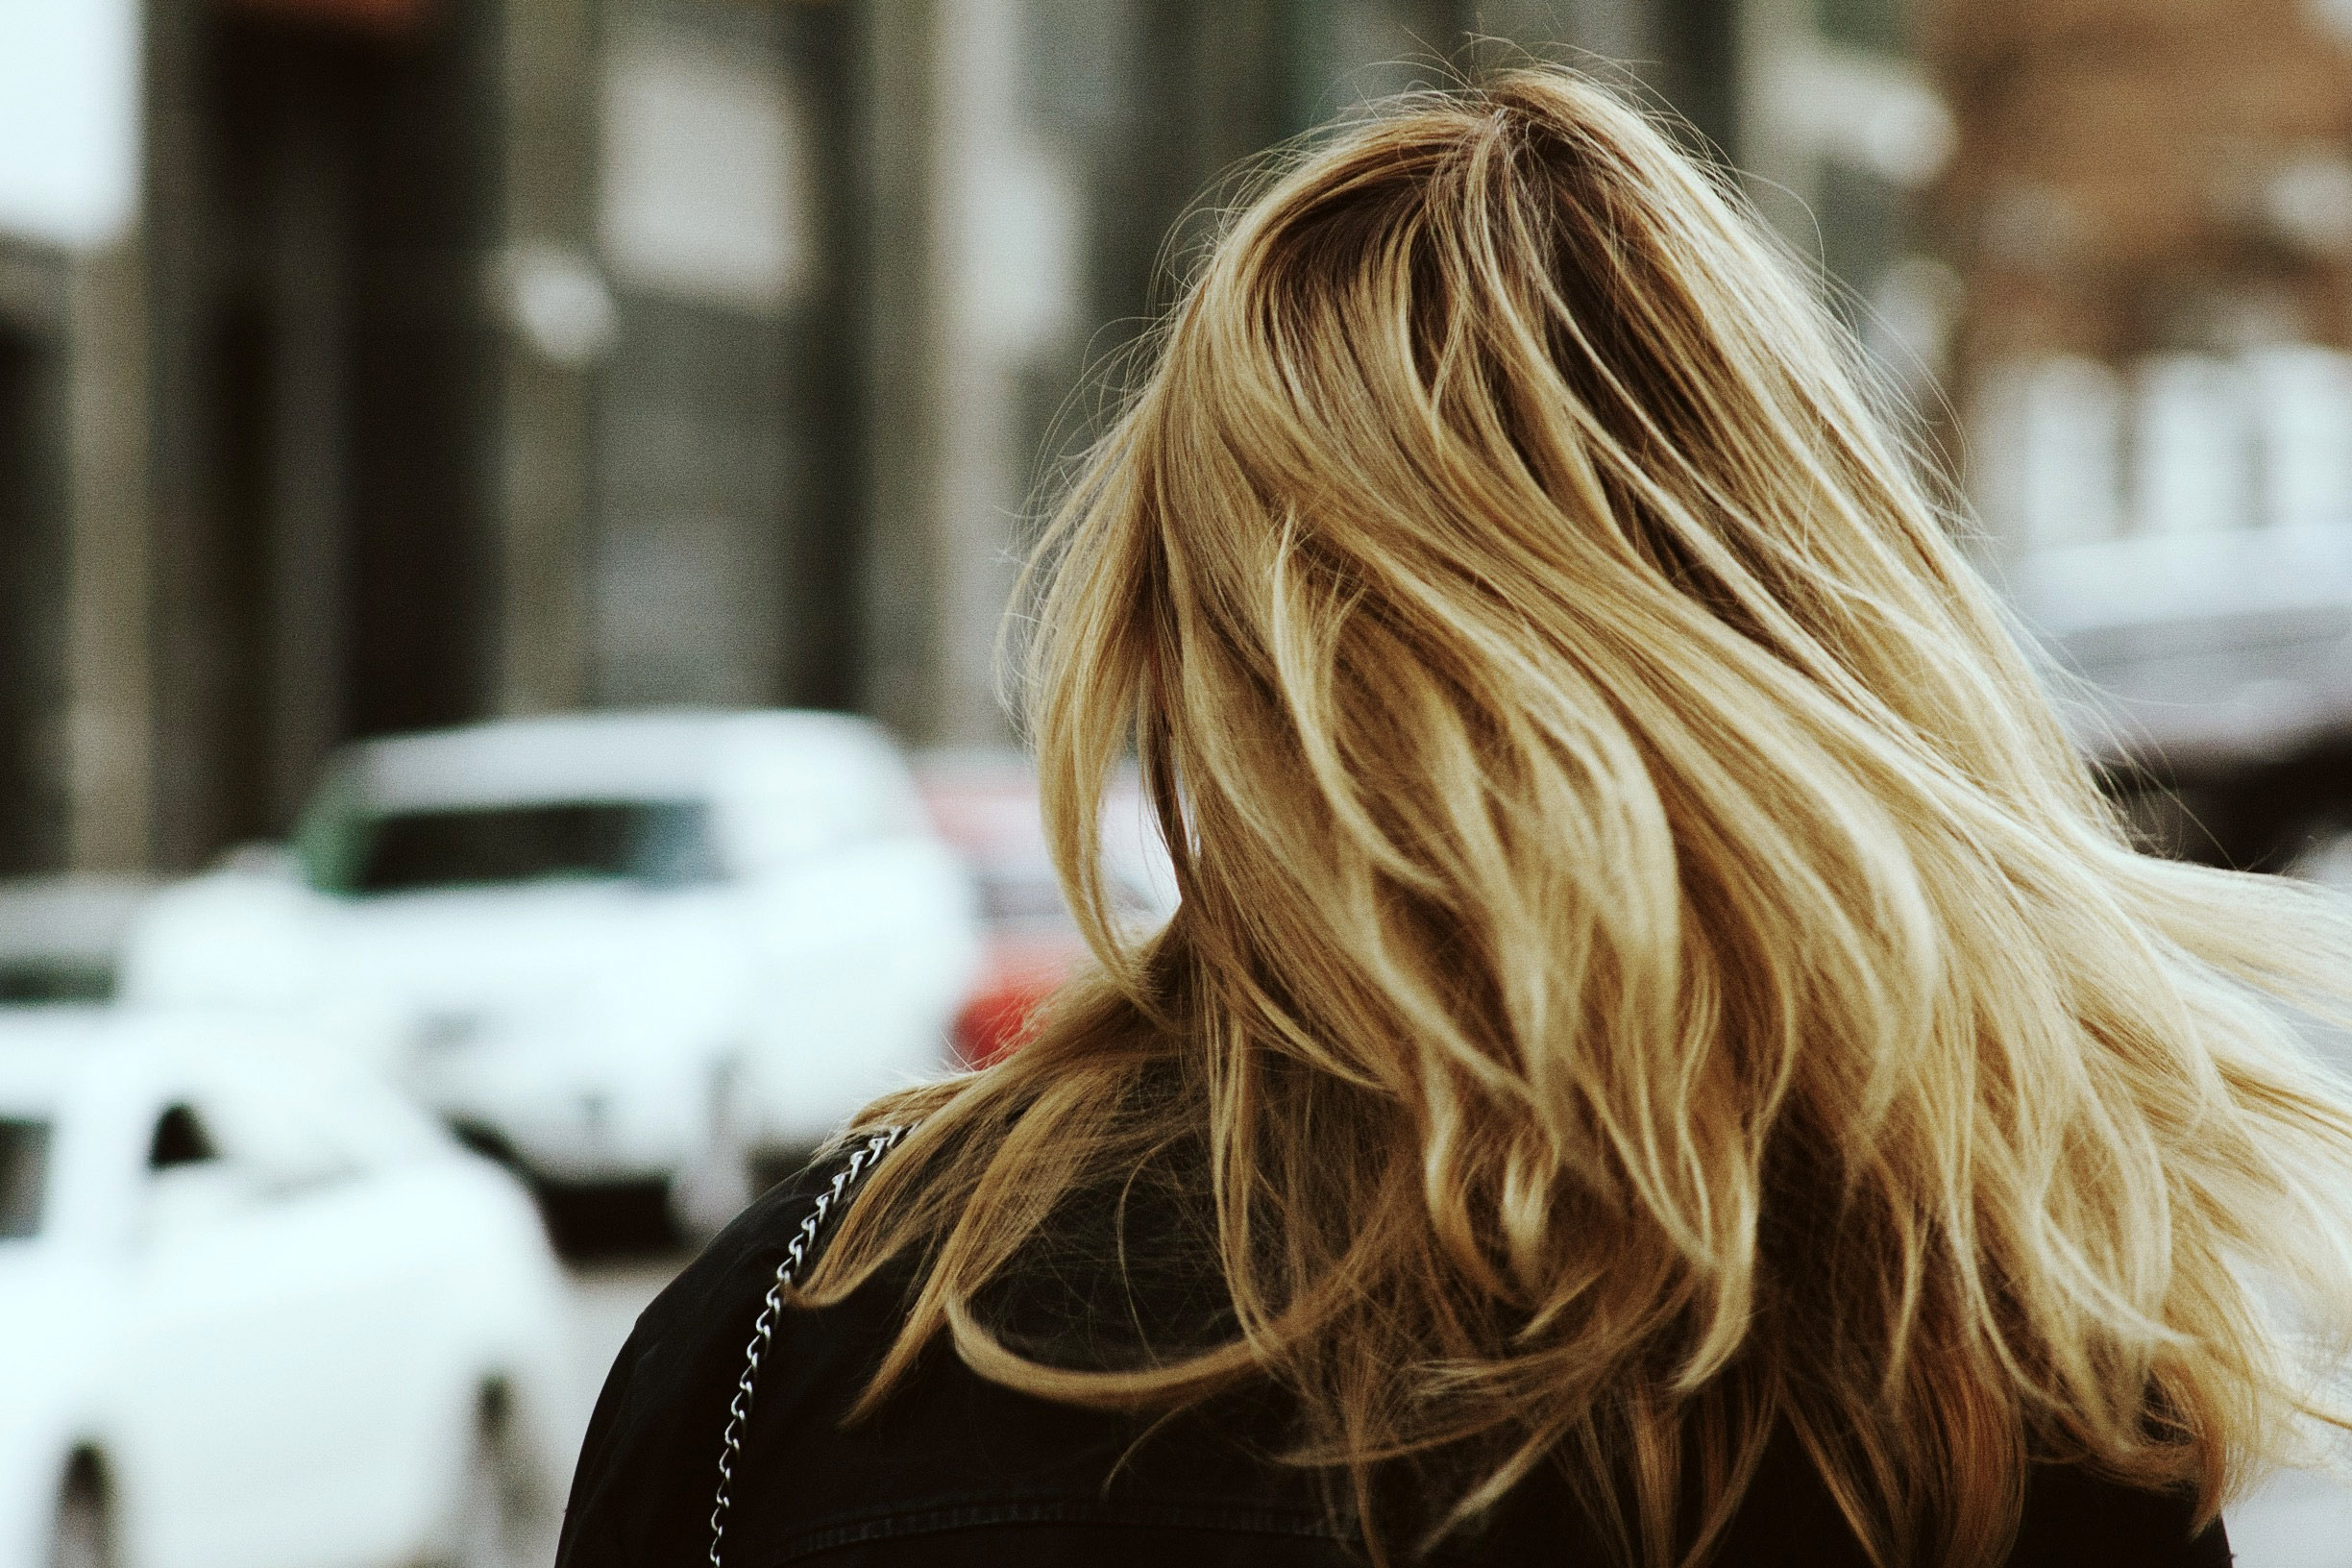 back-of-womens-head-with-blonde-hair.jpg